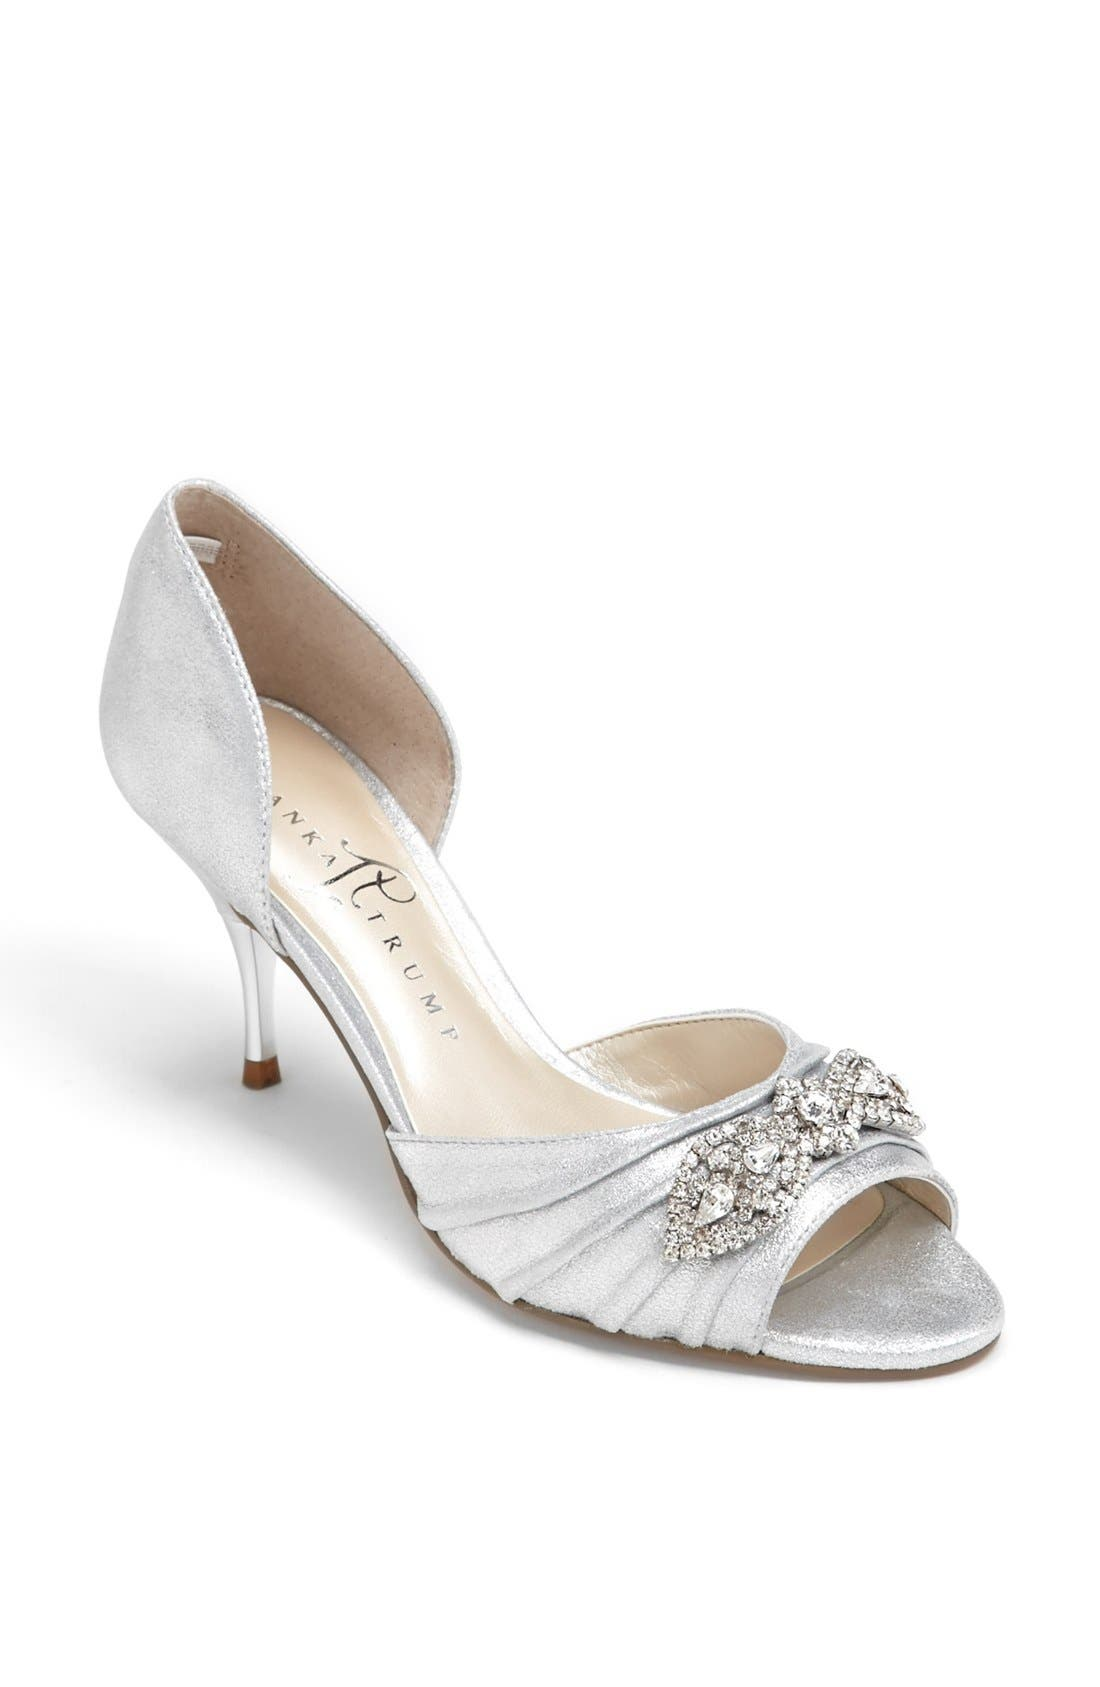 Alternate Image 1 Selected - Ivanka Trump 'Nanci' Sandal (Online Only)